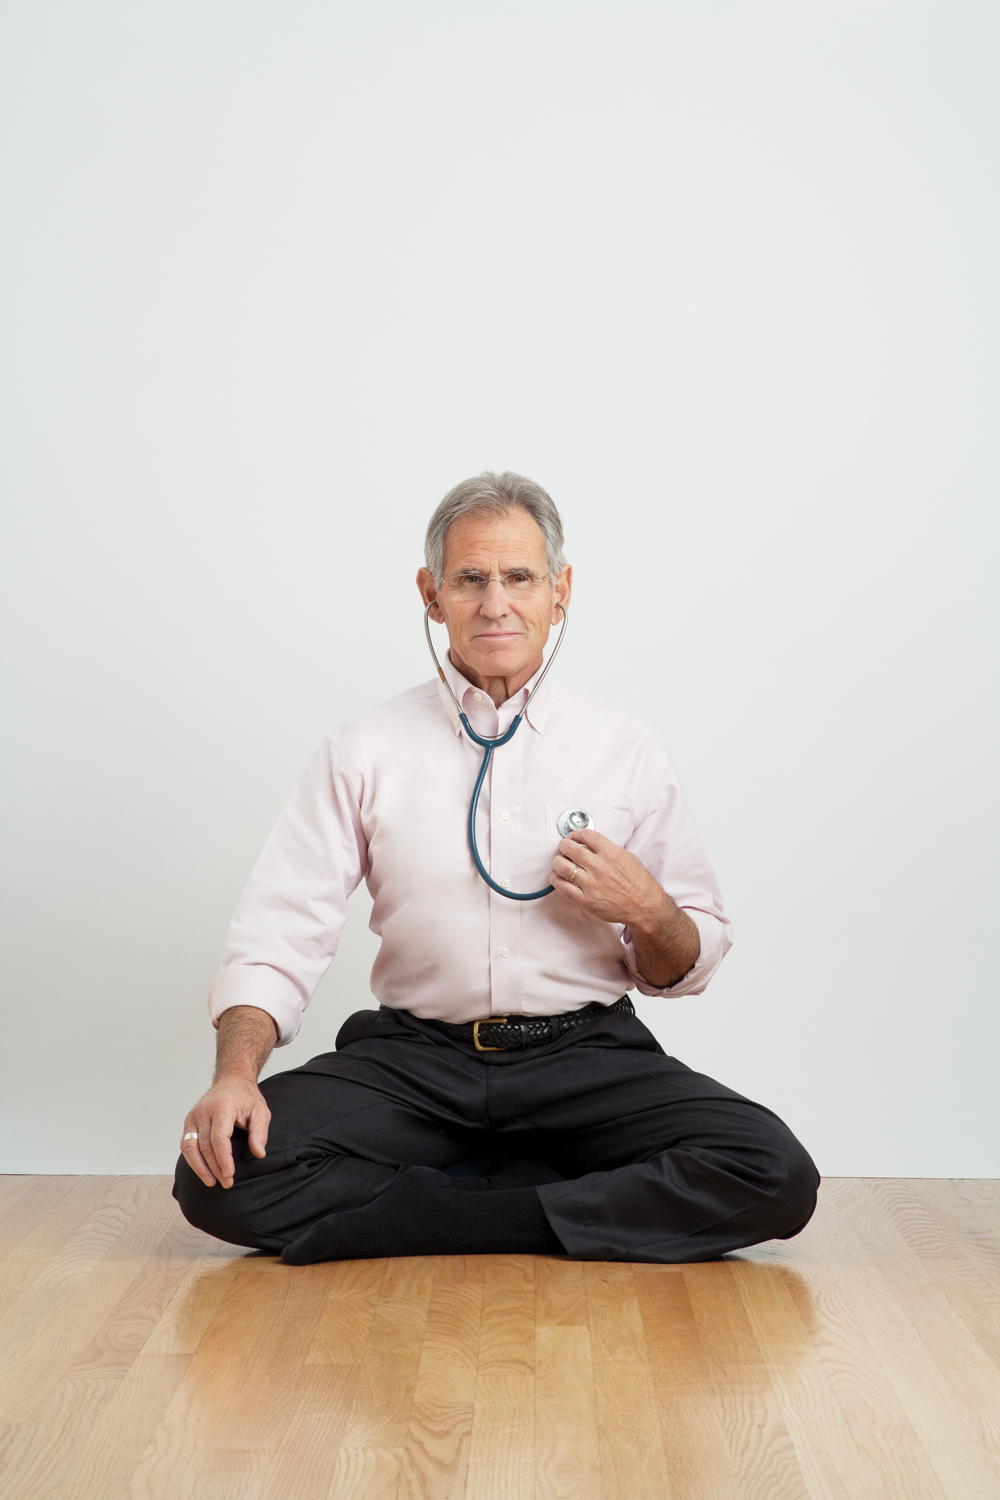 Jon Kabat-Zinn in seated meditation